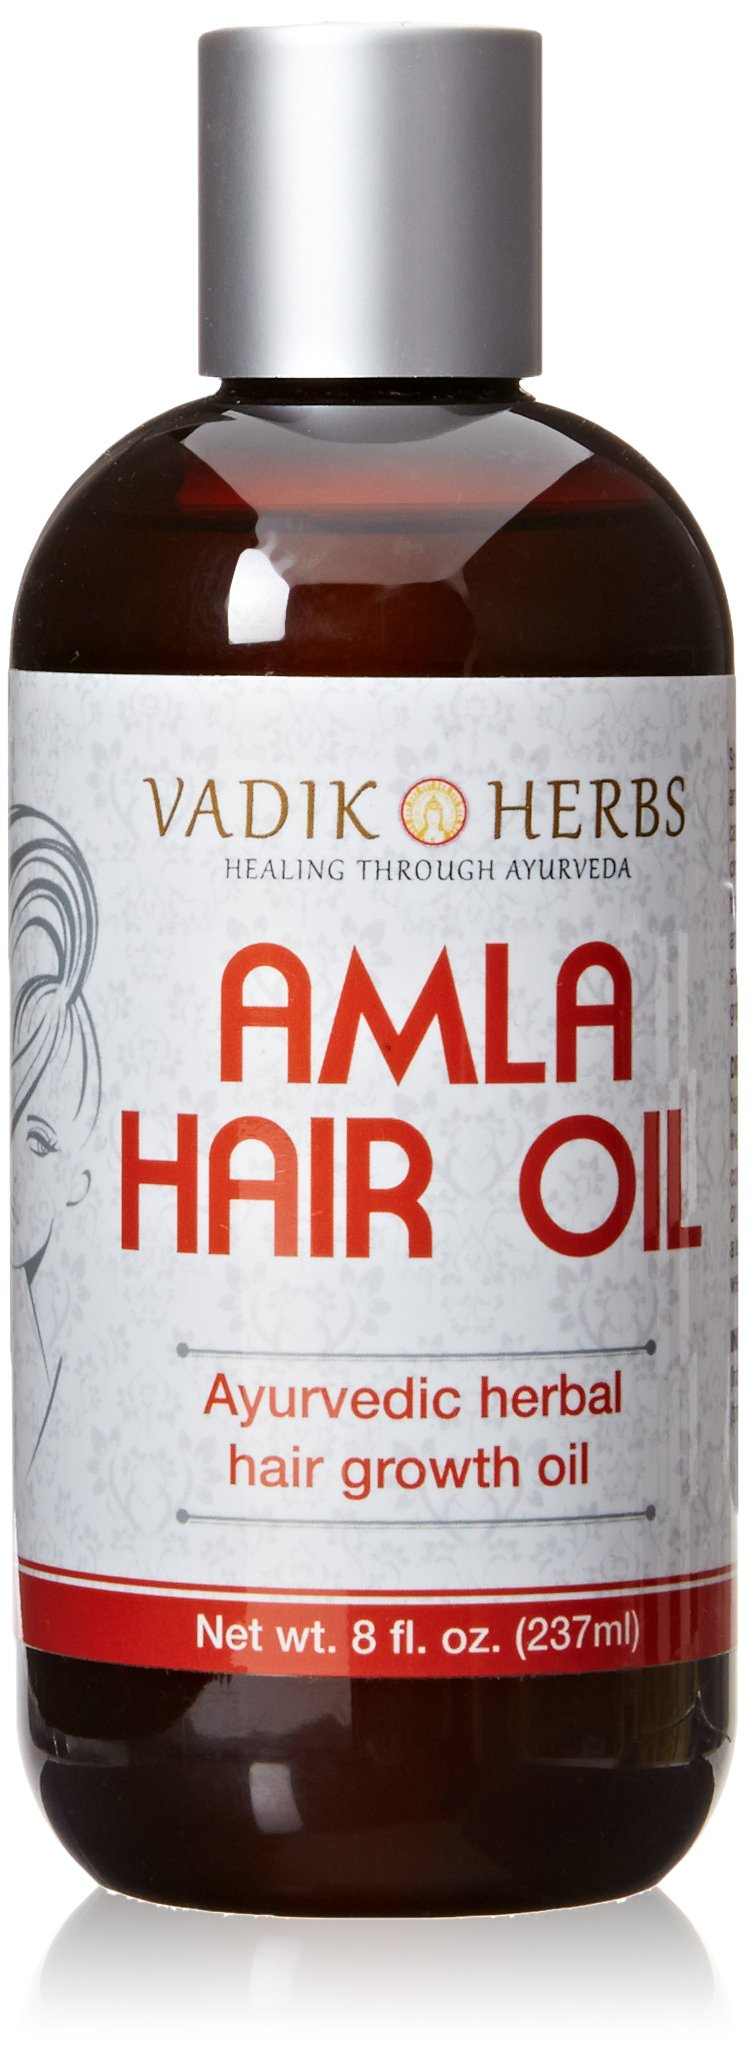 Amla Hair Oil (8 oz) by Vadik Herbs | Herbal hair growth oil | Herbal scalp treatment | Great for hair loss, balding, thinning of hair, for beard growth, made with Amla (Amalaki) - Indian gooseberry